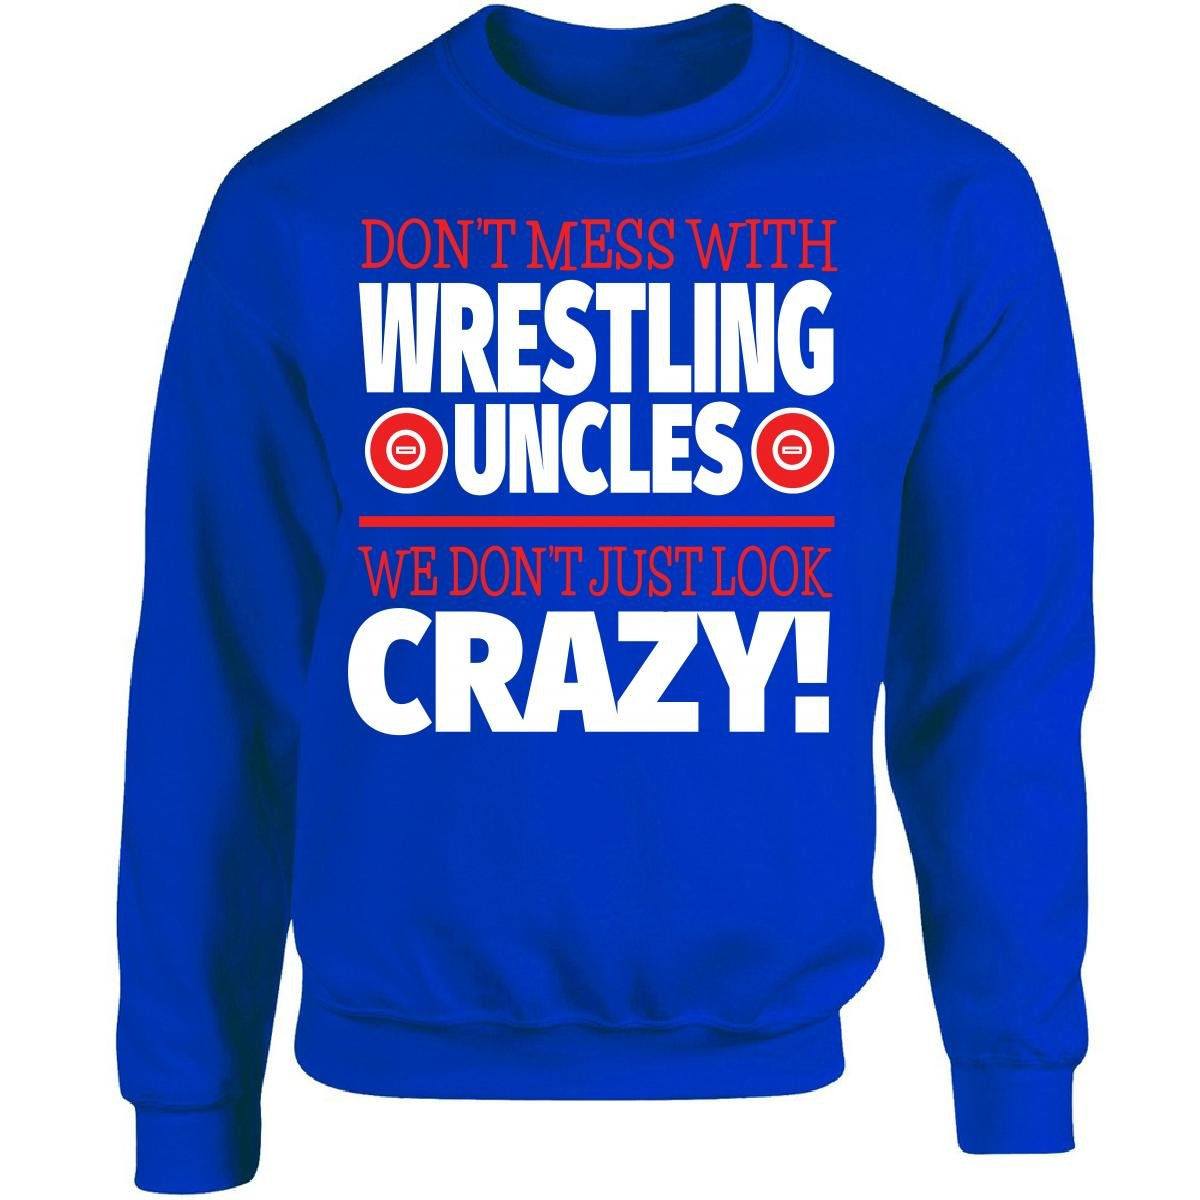 Eternally Gifted Crazy Wrestling Family - Don't Mess With Wrestling Uncles - Adult Sweatshirt